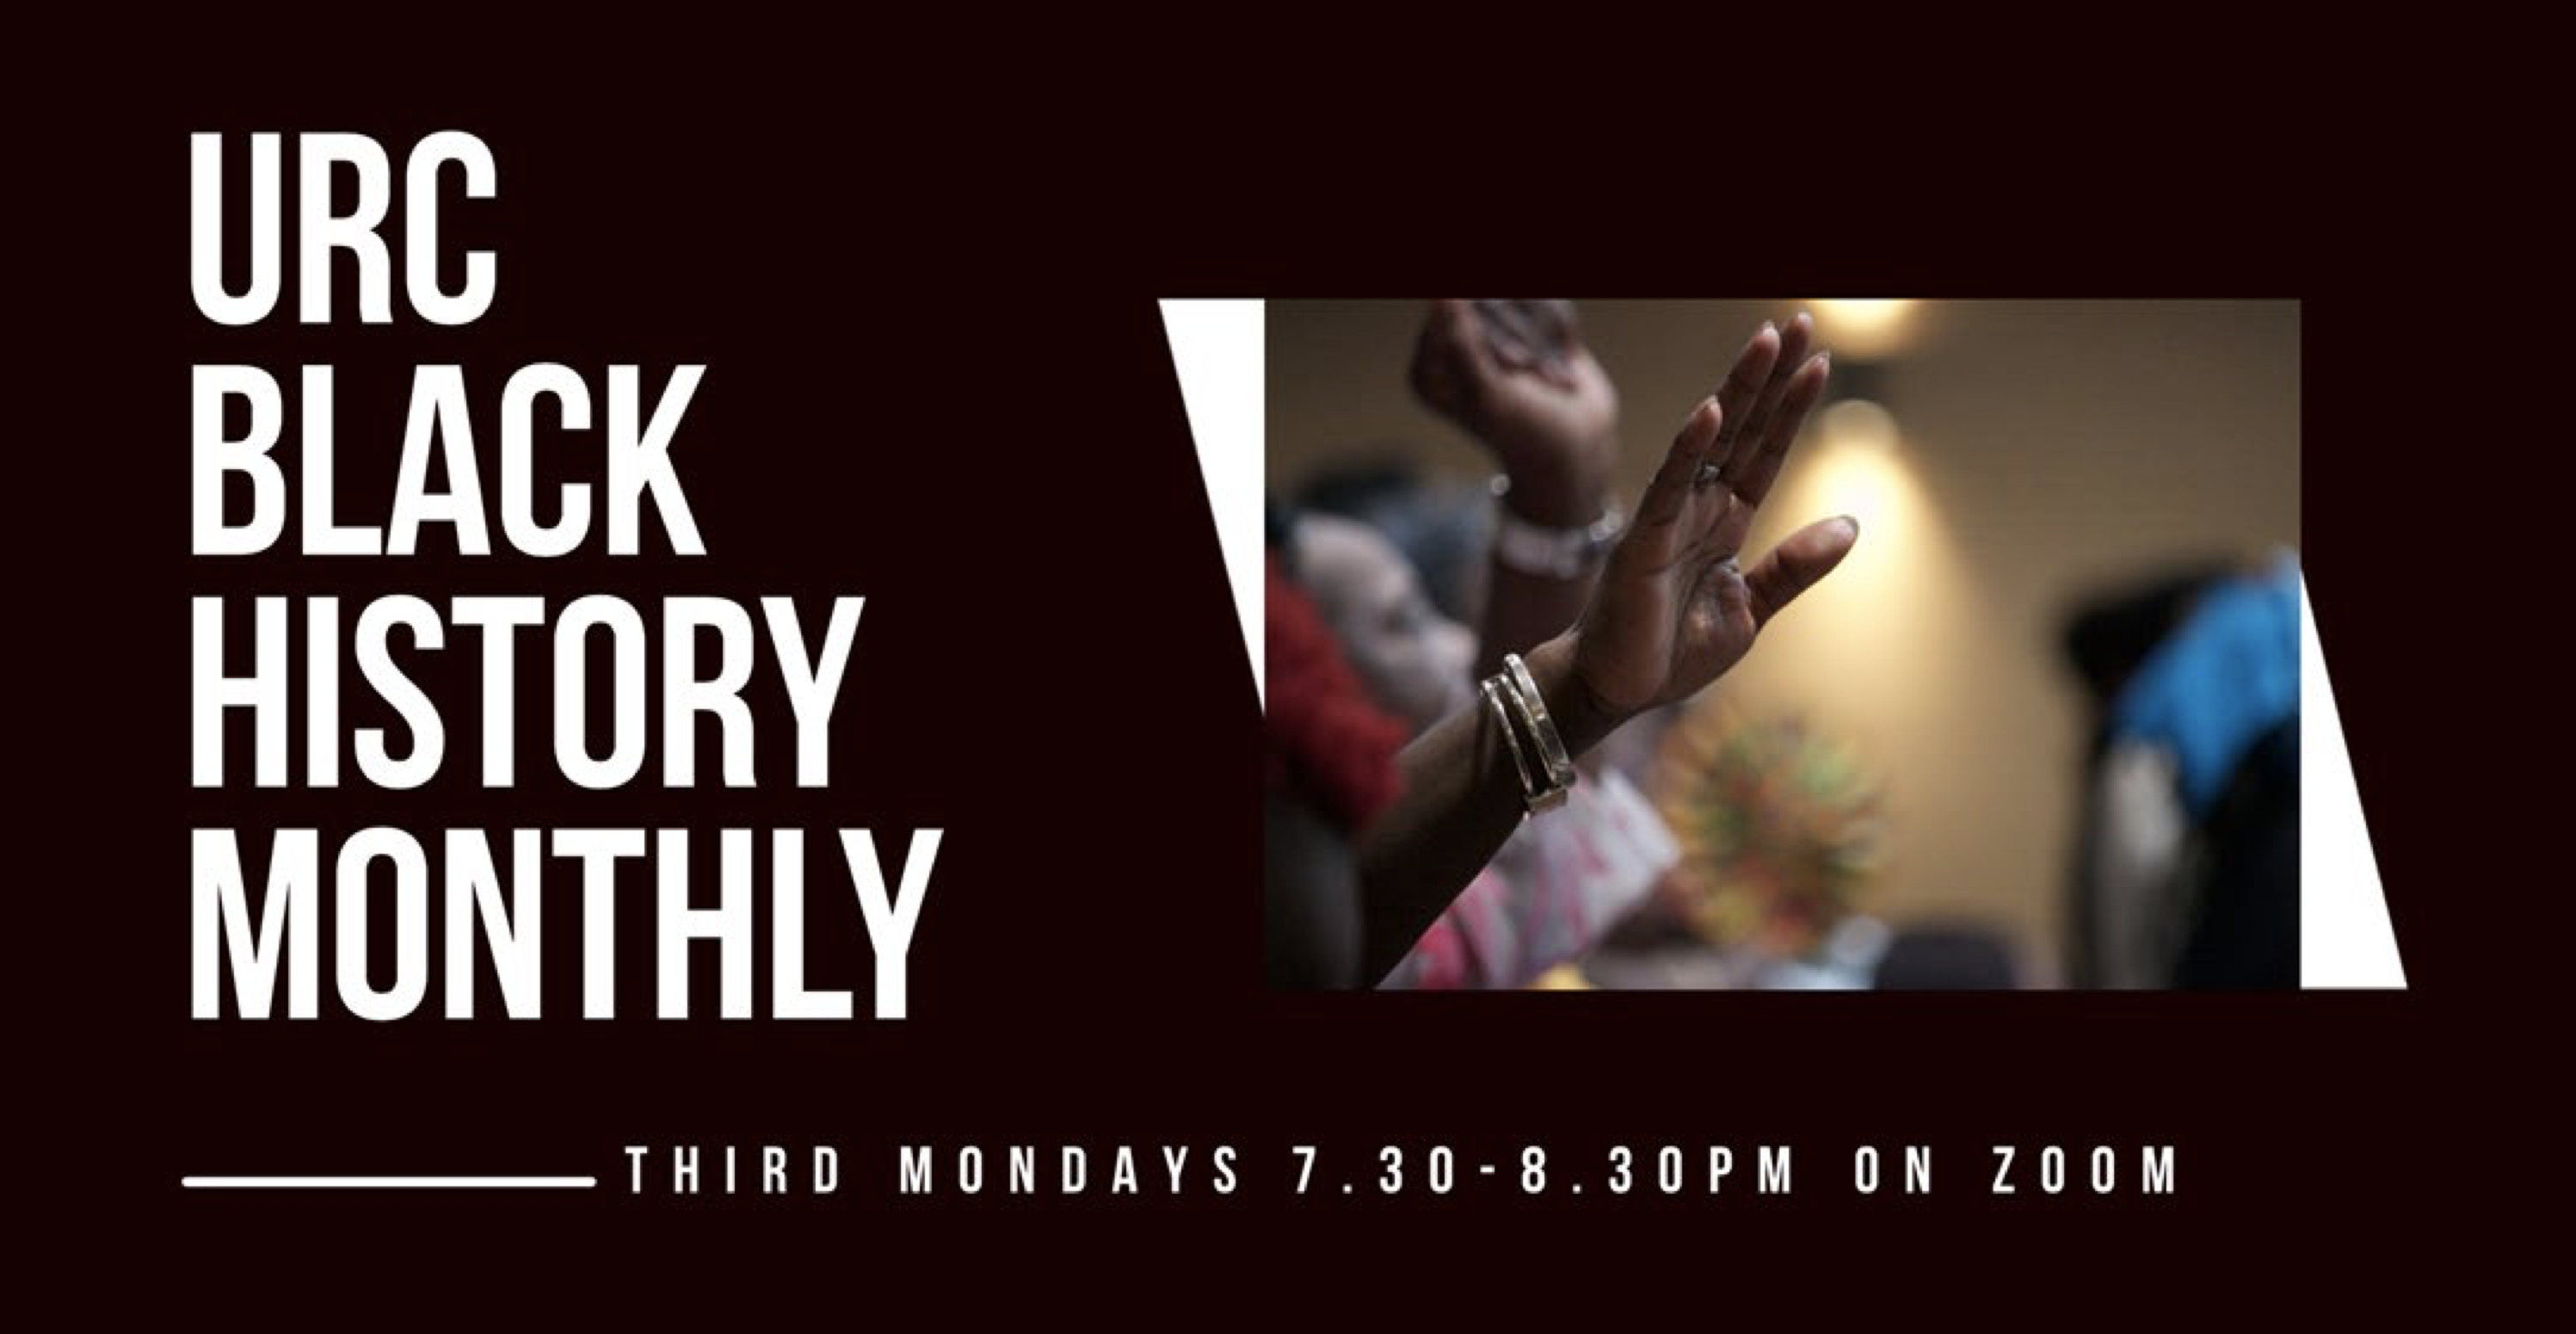 Black History Monthly with the URC and CWM Webinars